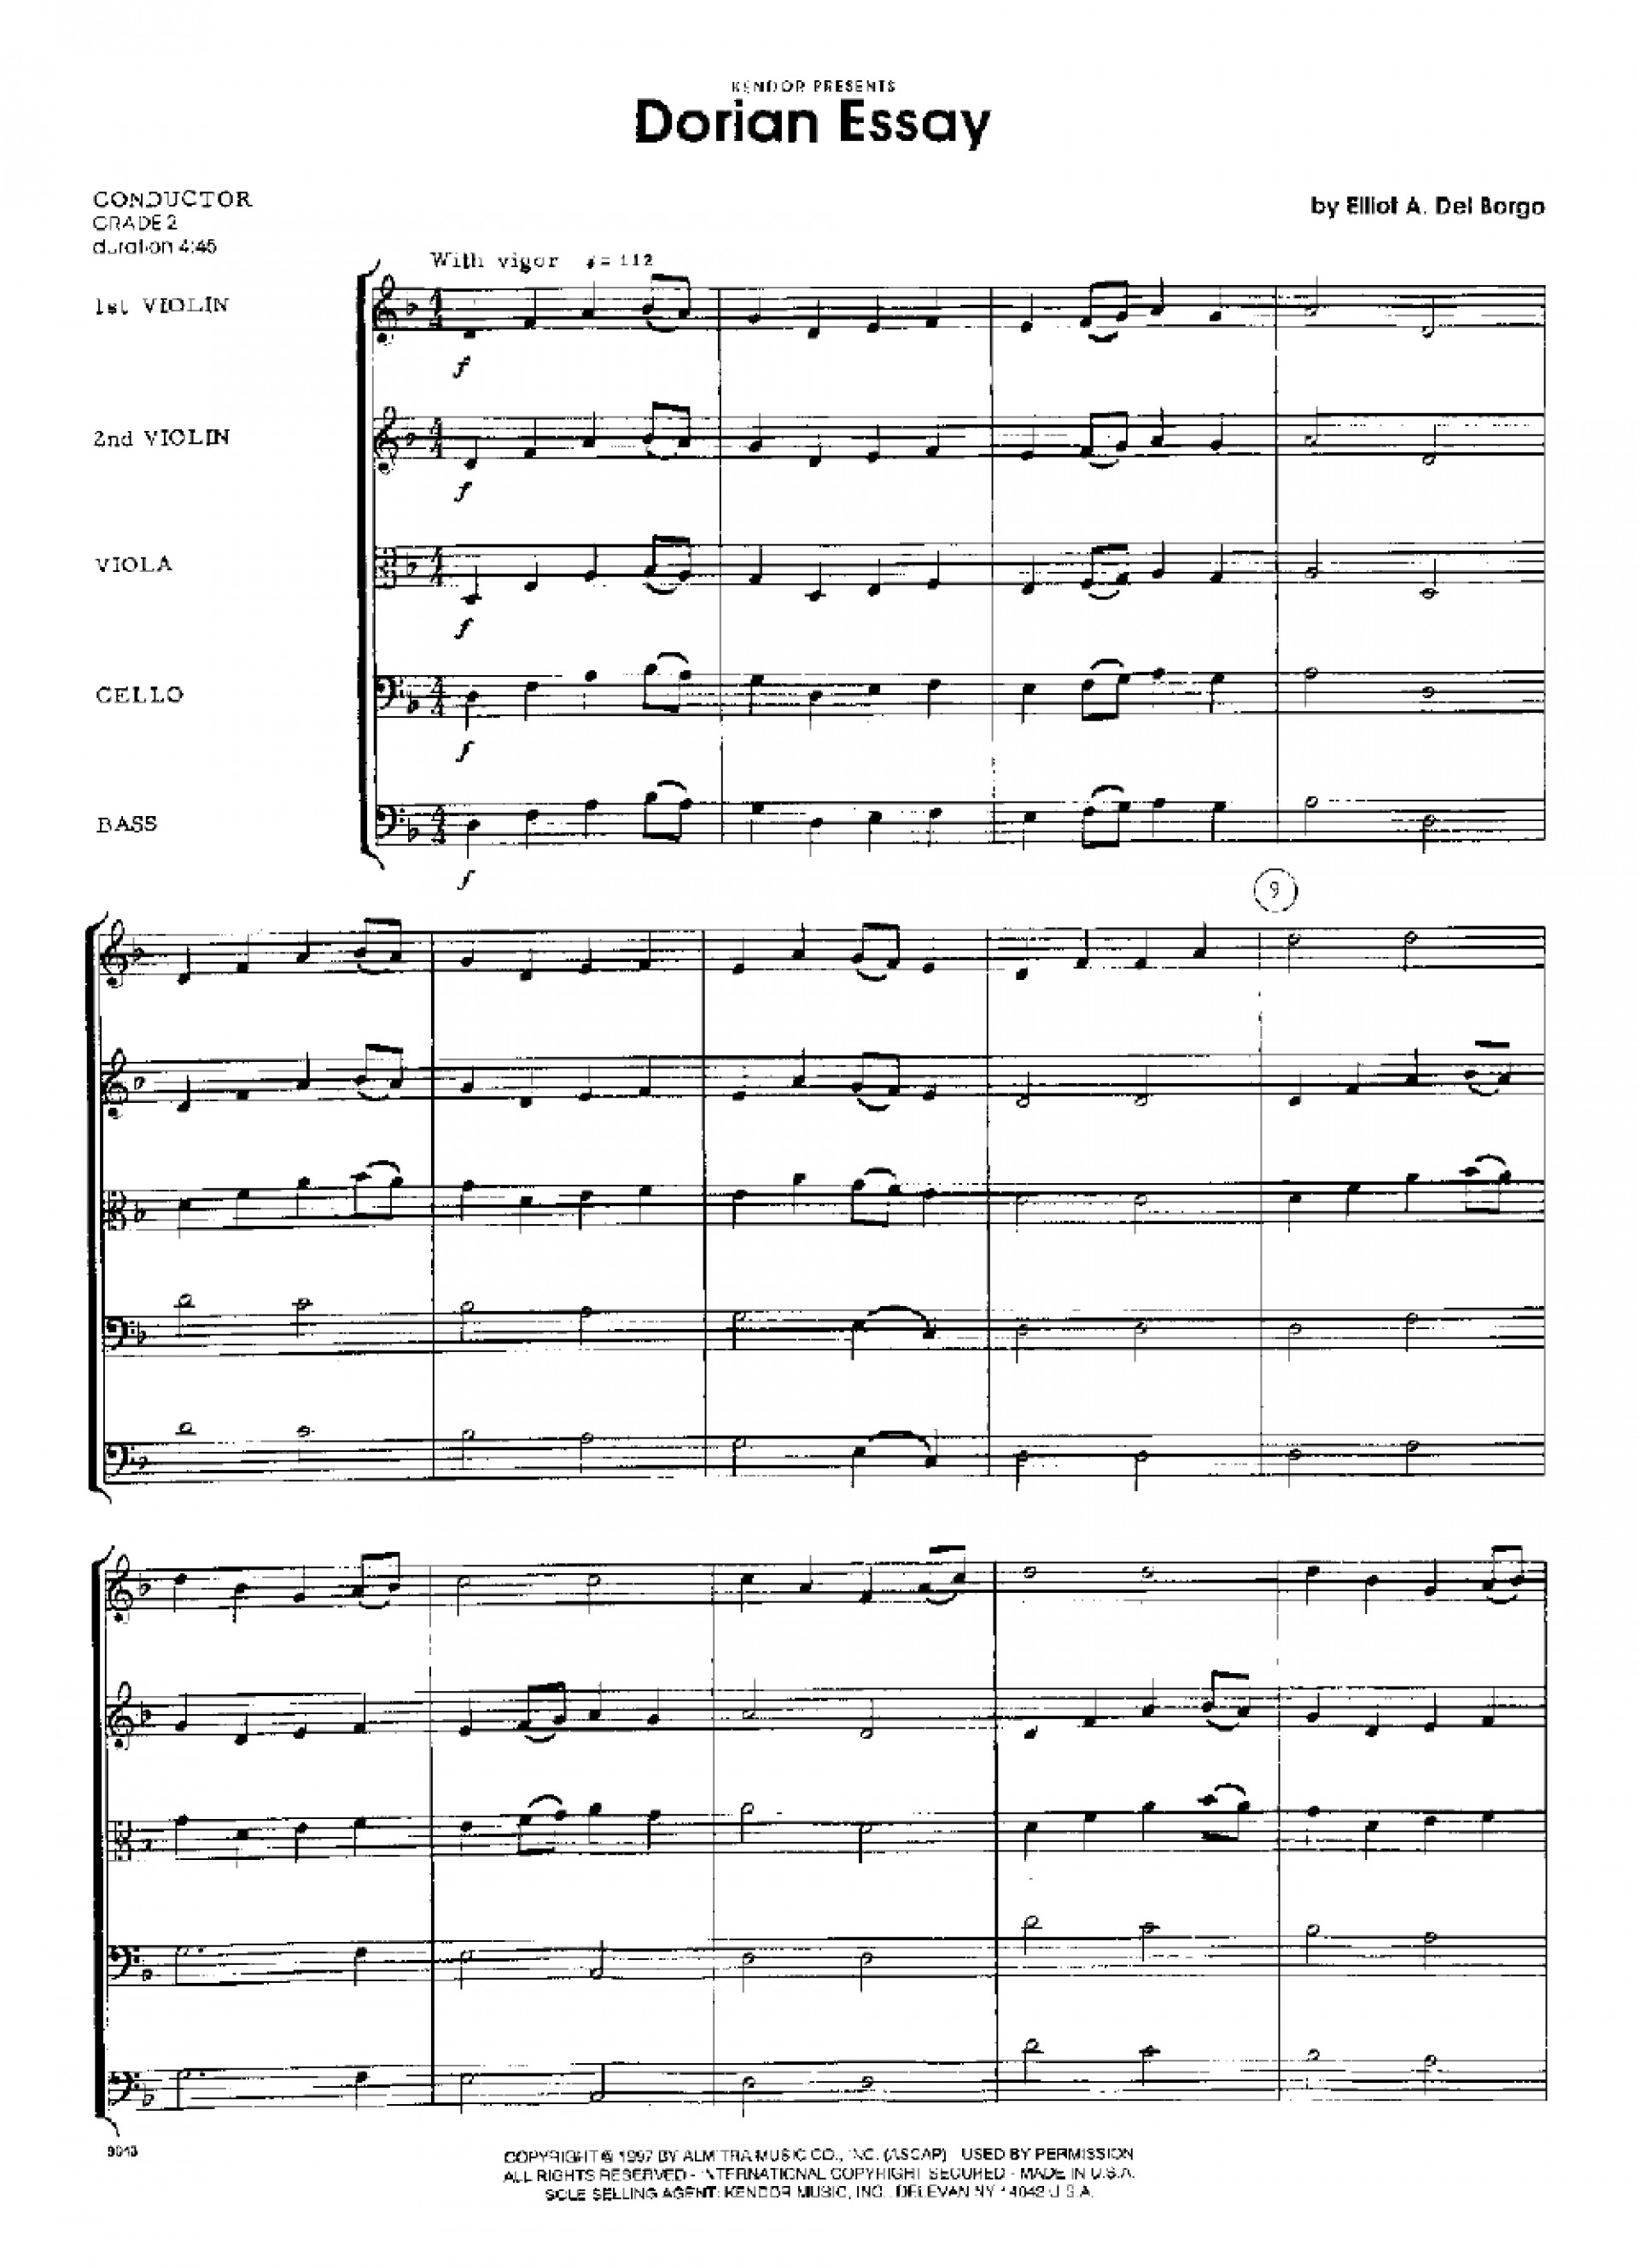 016 Essay Example On Marvelous Music Musical Instruments Importance Of Culture And 1920